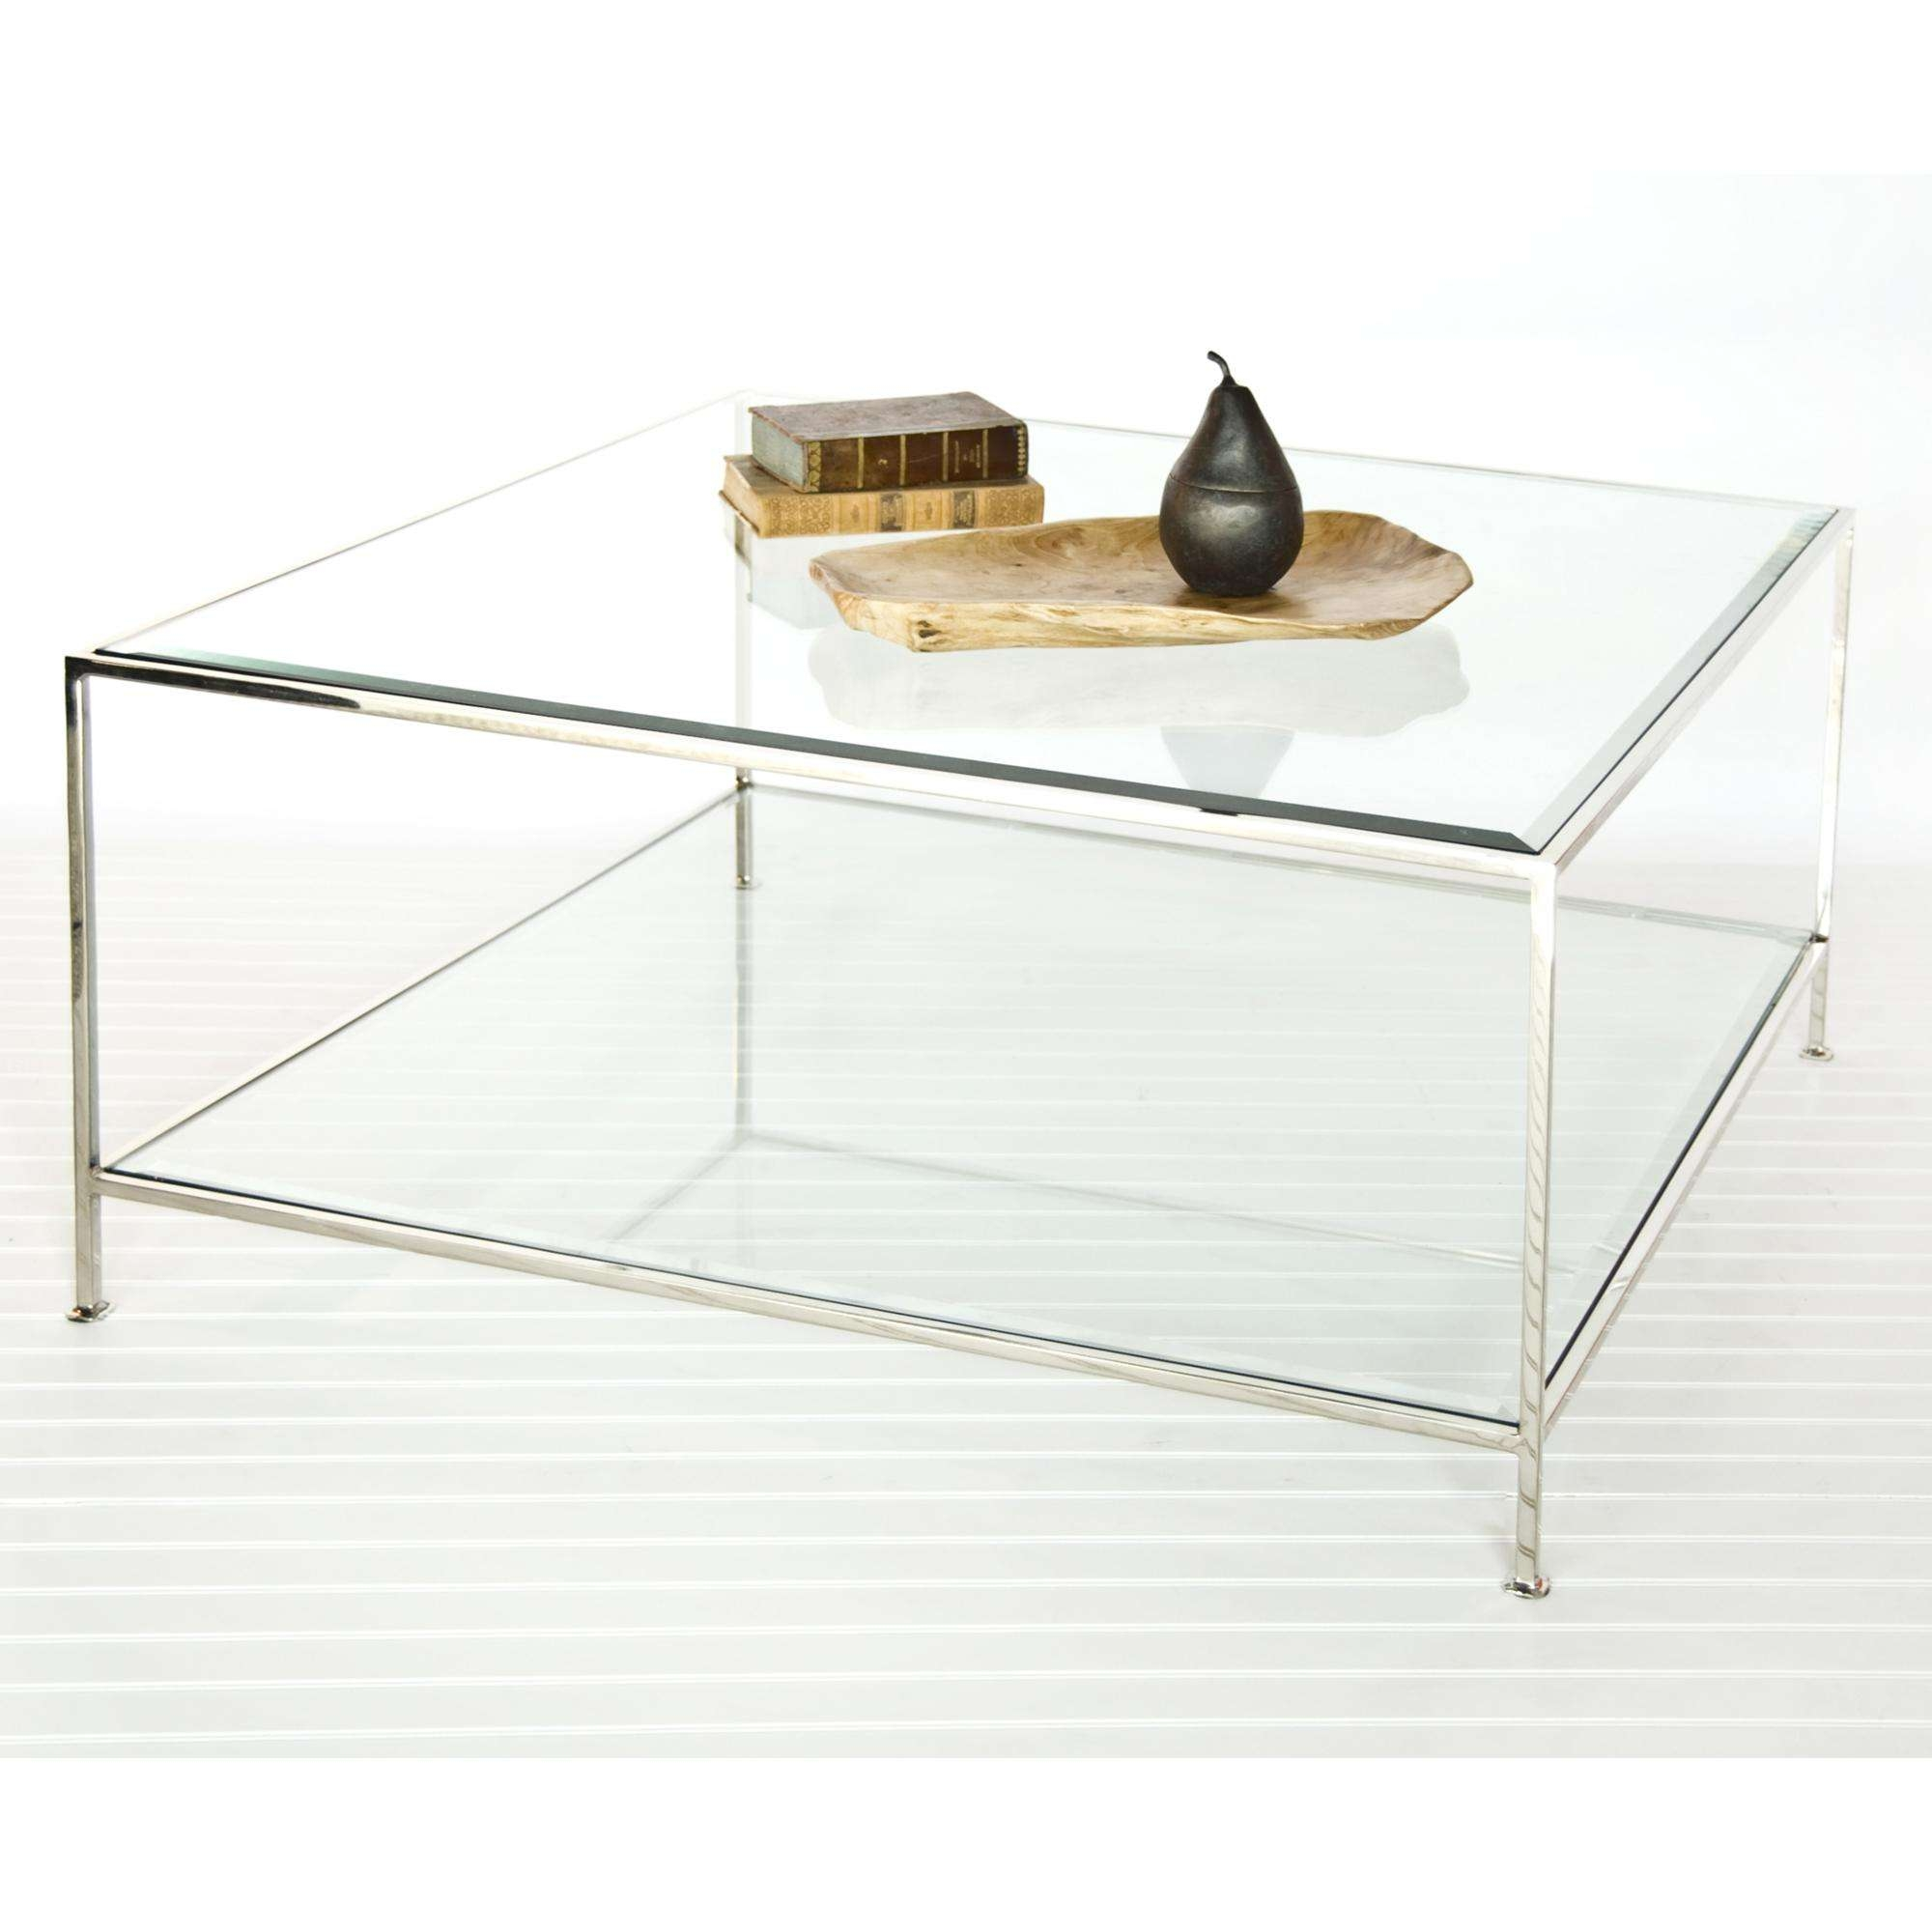 Popular Elephant Coffee Tables With Glass Top Throughout Glass Coffee Table – New Collections About Coffee Table (View 17 of 20)